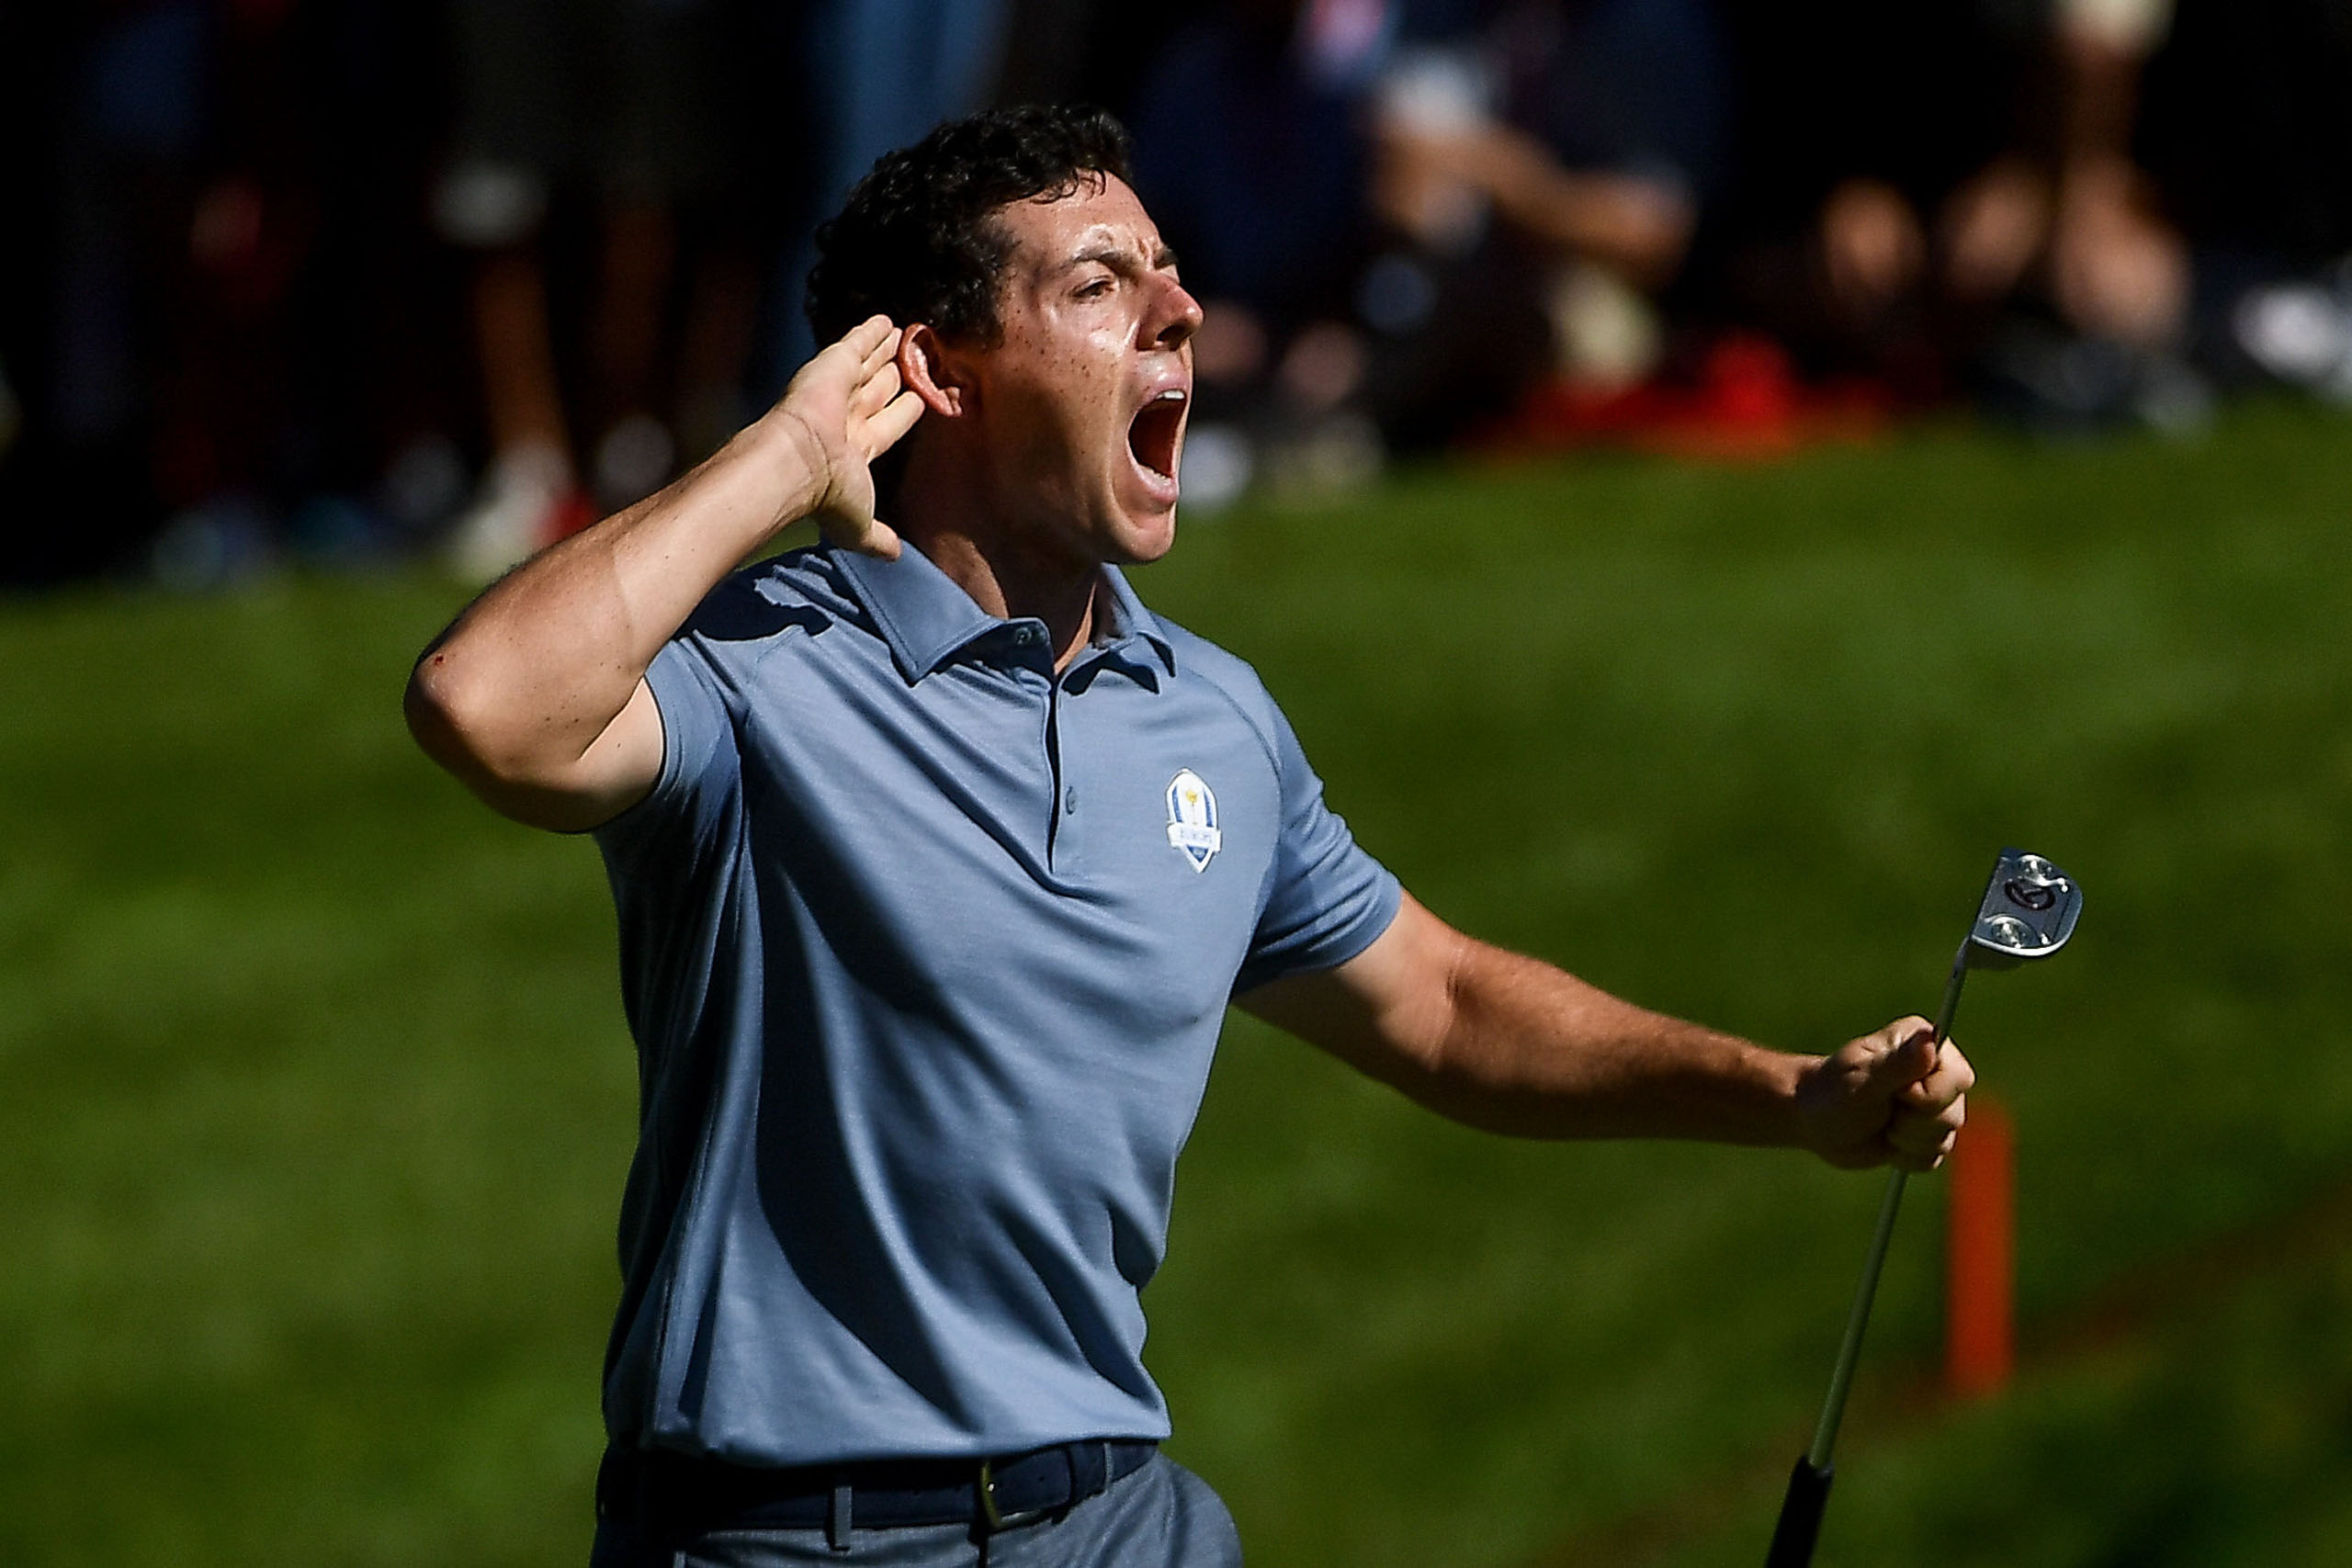 McIlroy at the raucous 2016 Ryder Cup